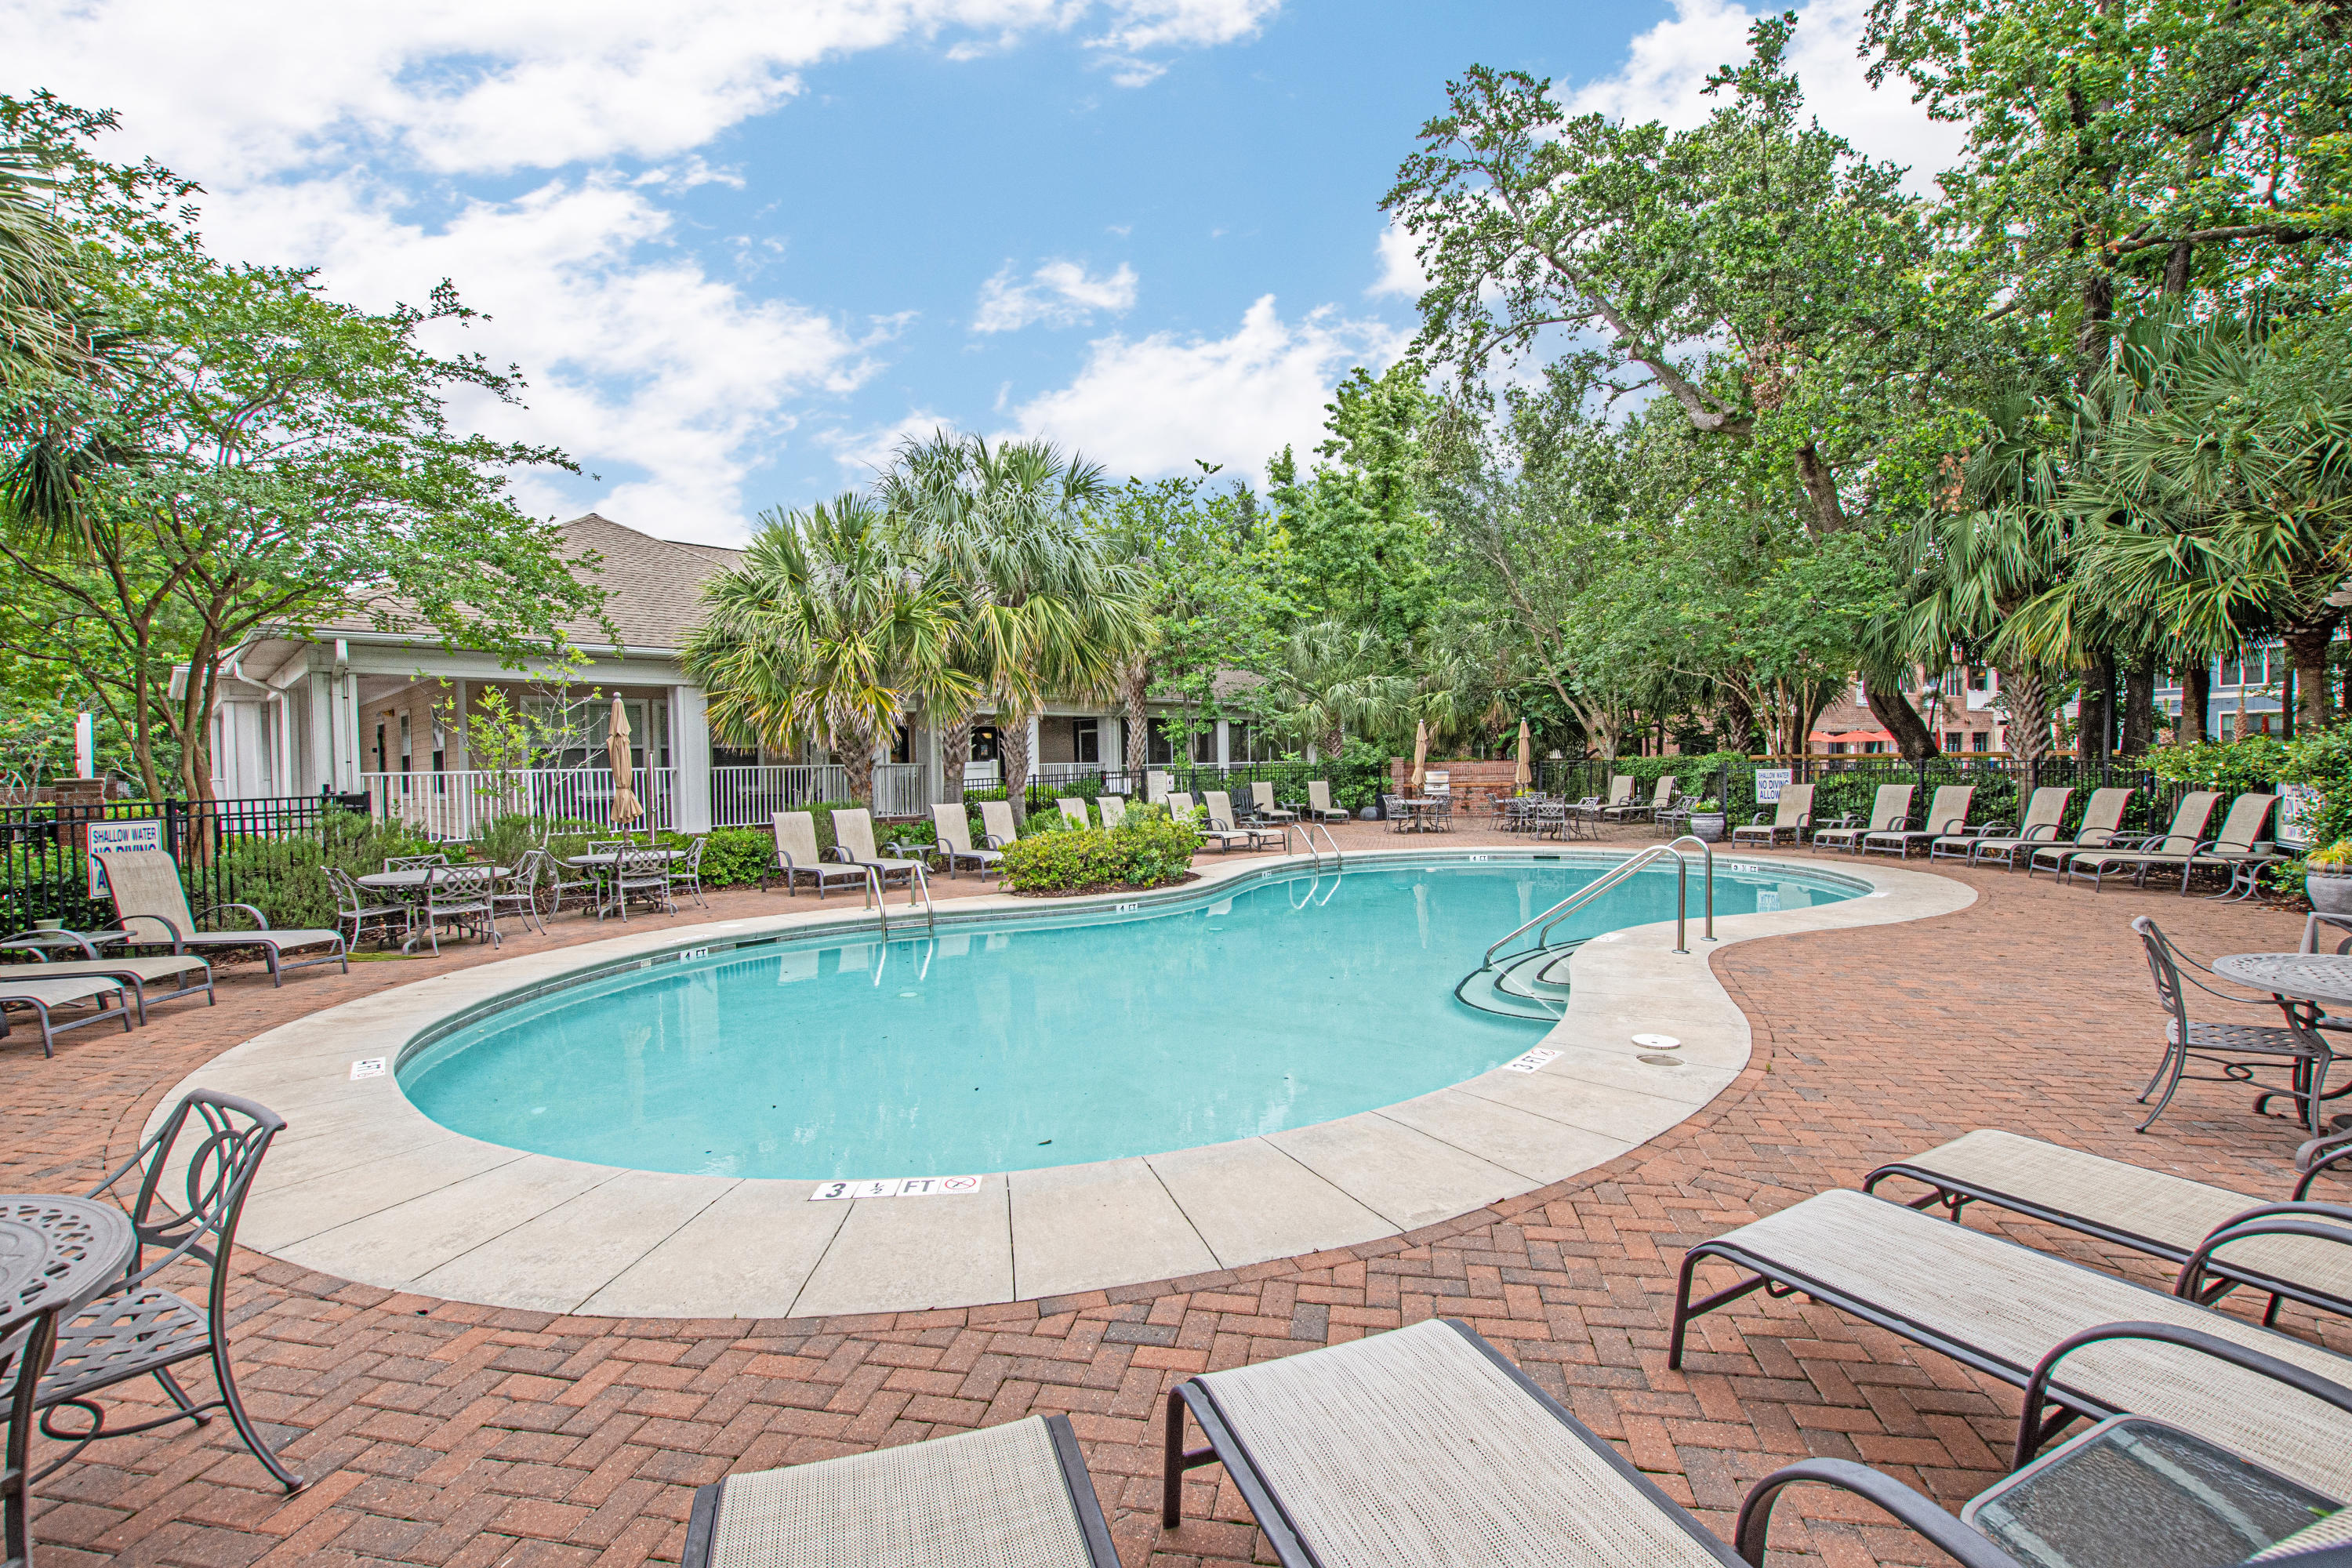 Regatta On James Island Homes For Sale - 1755 Central Park, Charleston, SC - 1